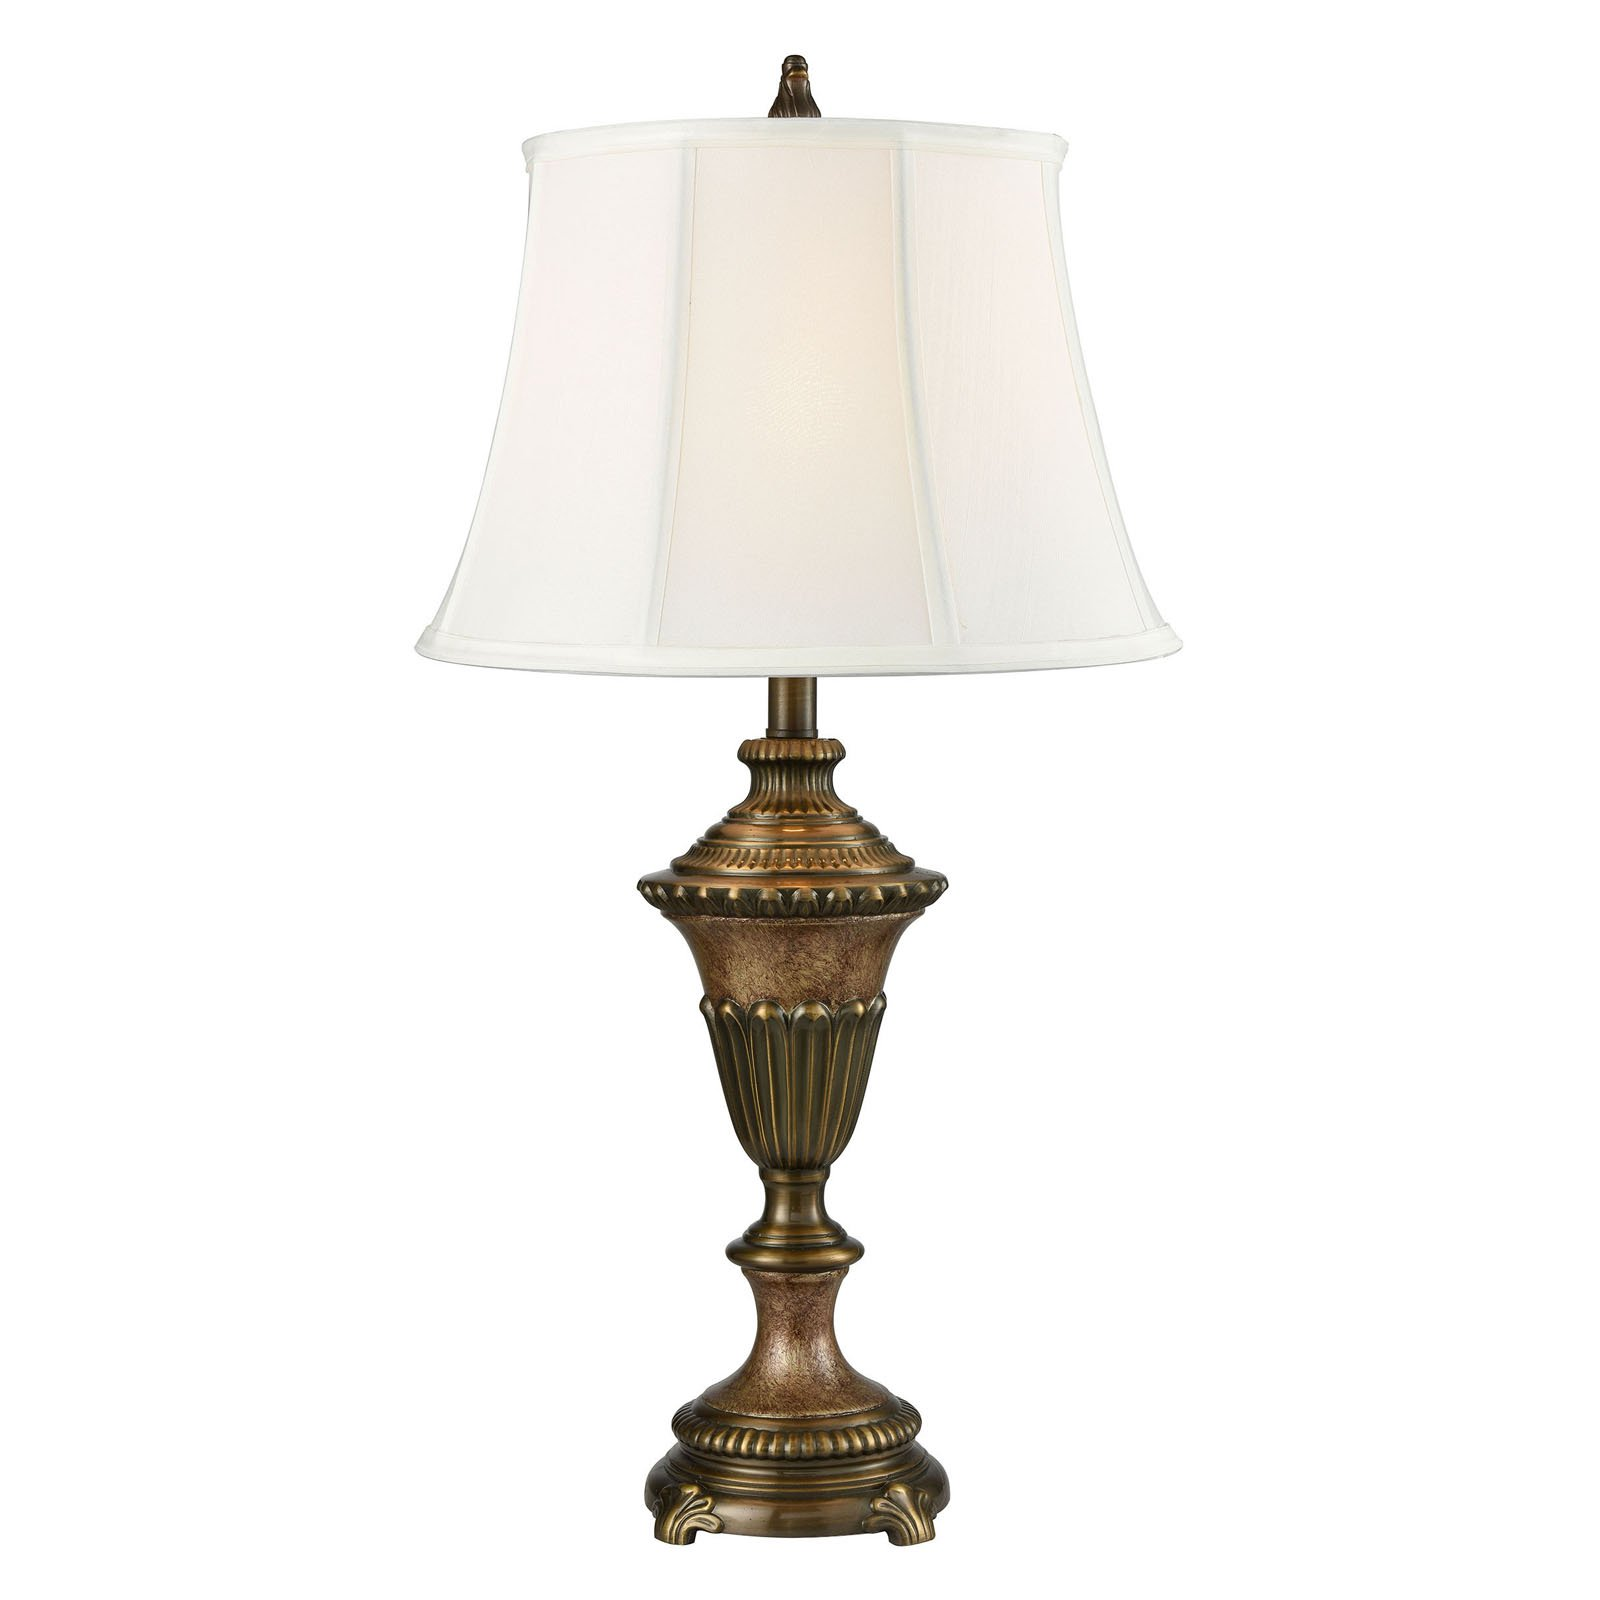 Springdale Lighting Ethana 28.5 in. Cast Metal Table Lamp